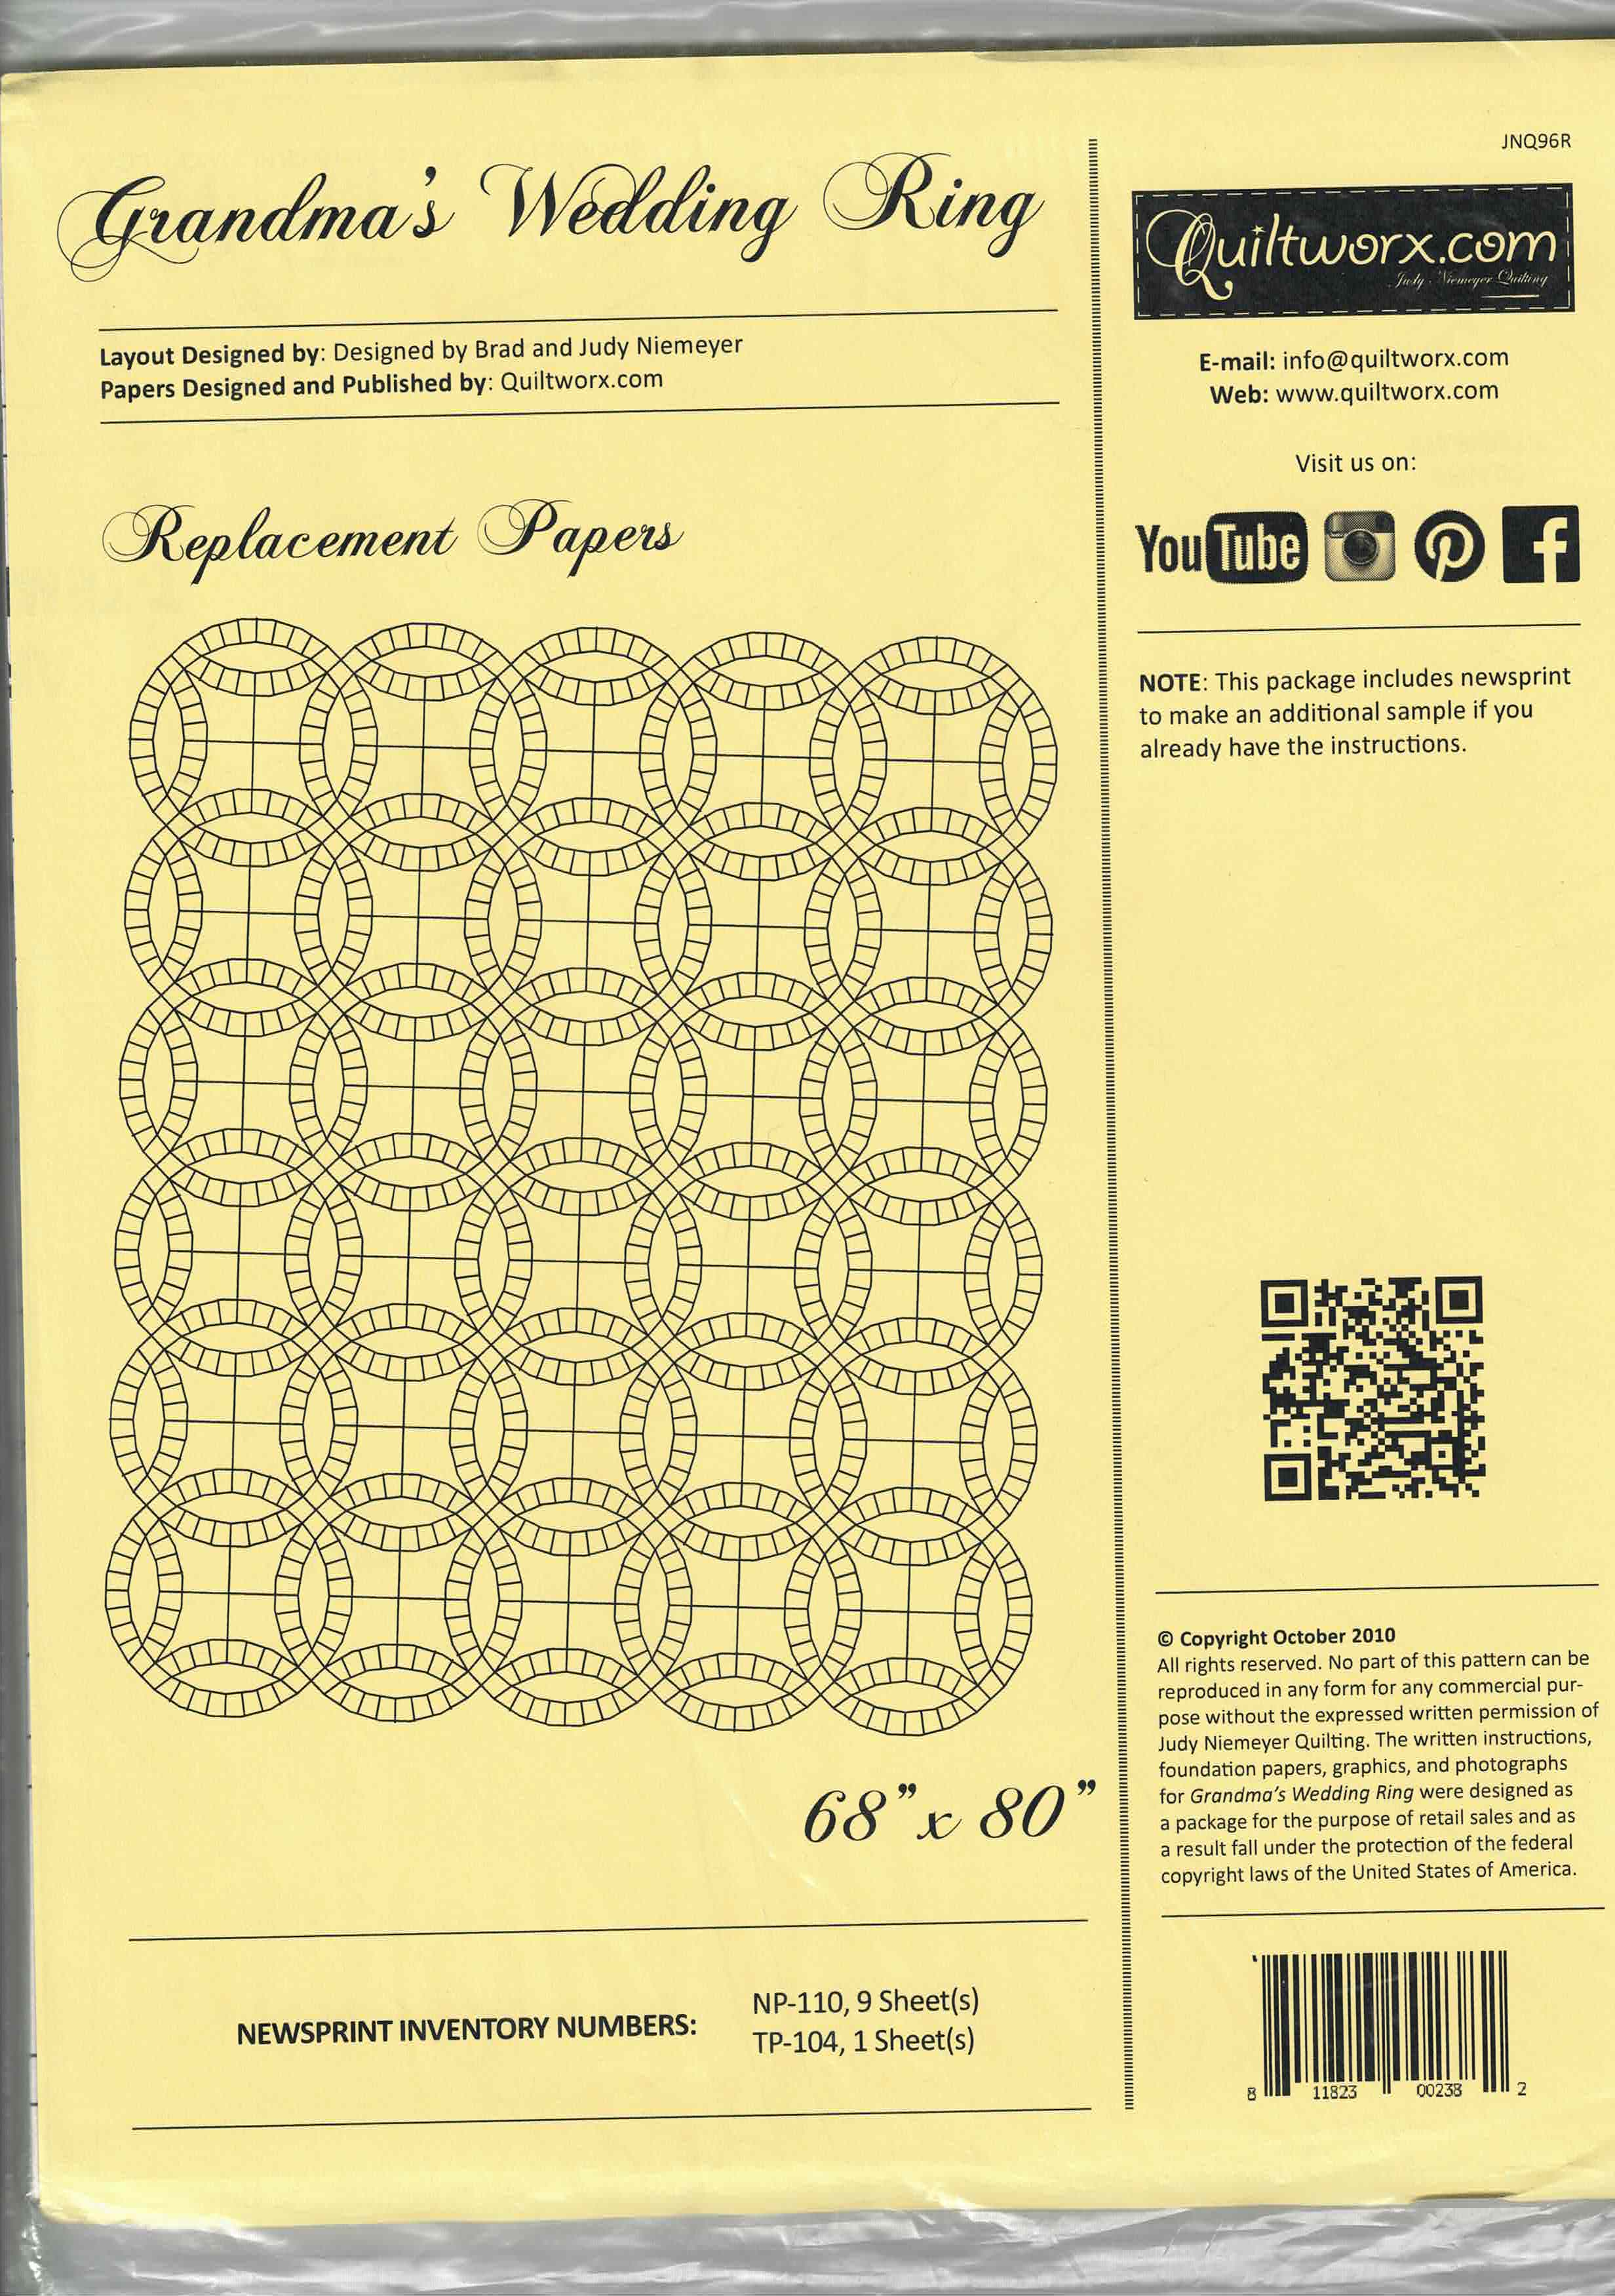 Grandma's Wedding Ring pattern - Replacement Papers